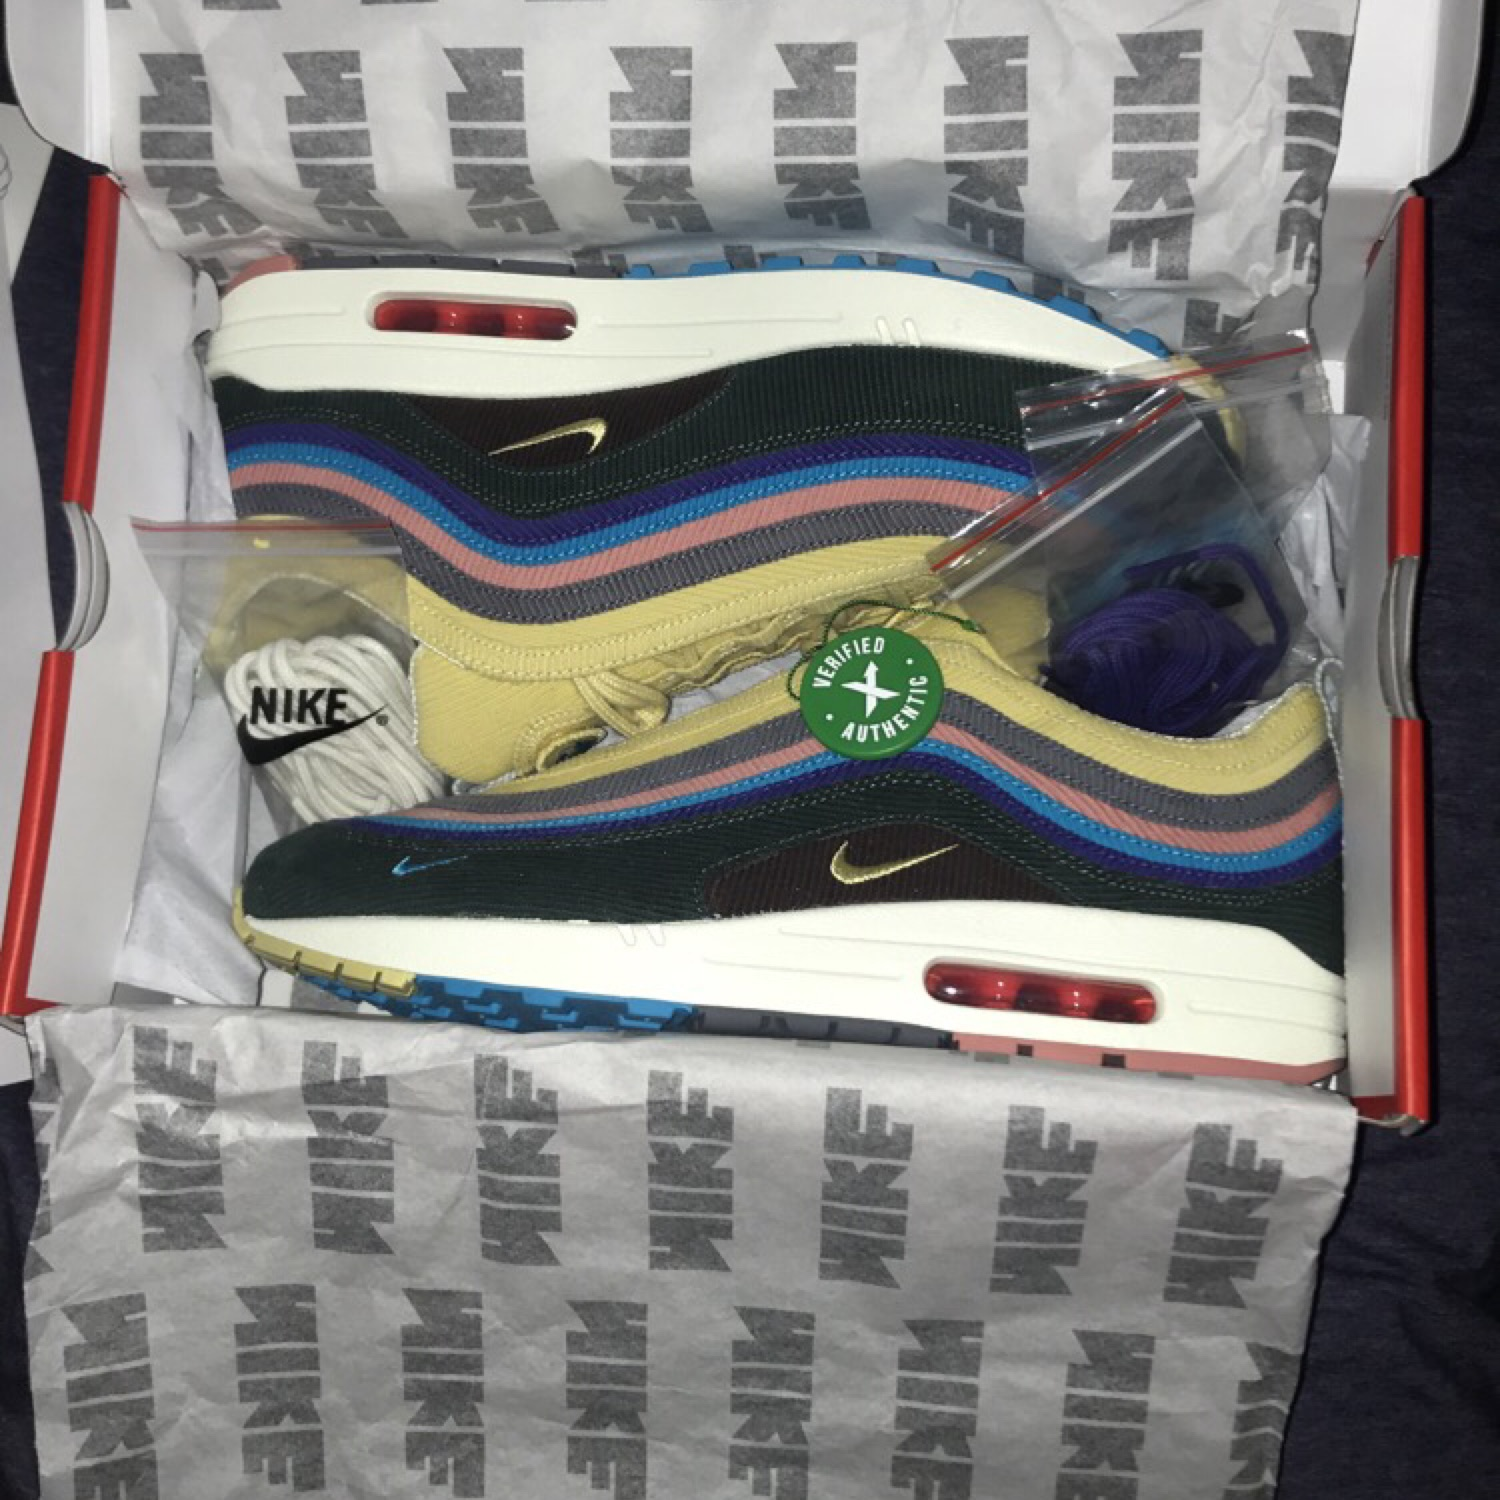 official site large discount discount Nike Air Max 97/1 Sean Wotherspoon